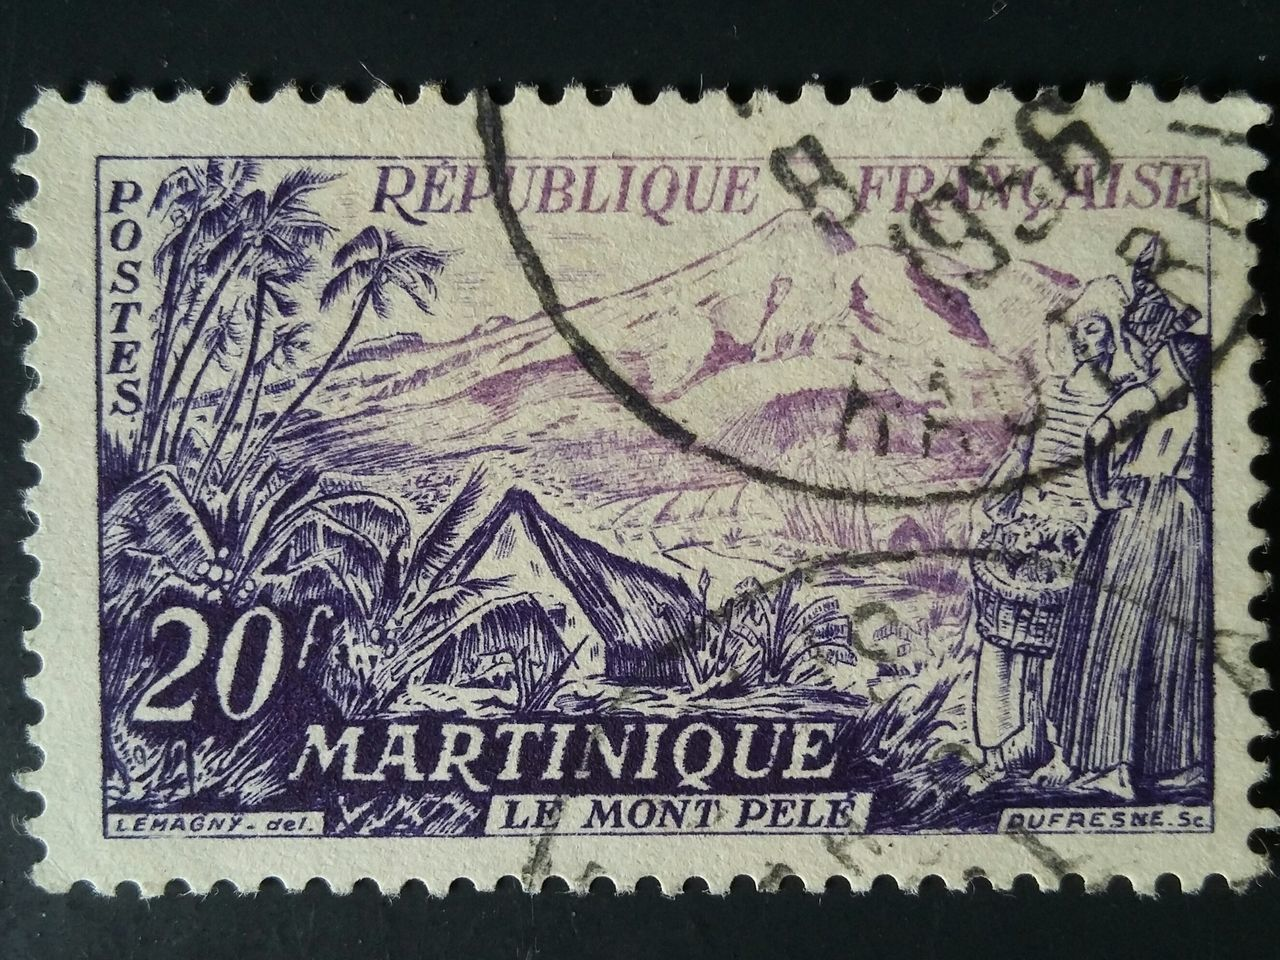 martinique Postage Stamp France Communication People Business Finance And Industry Creativity Politics And Government History Commemorate Stamp Old-fashioned Collections Collectibles Industry Nikonphotography Paper